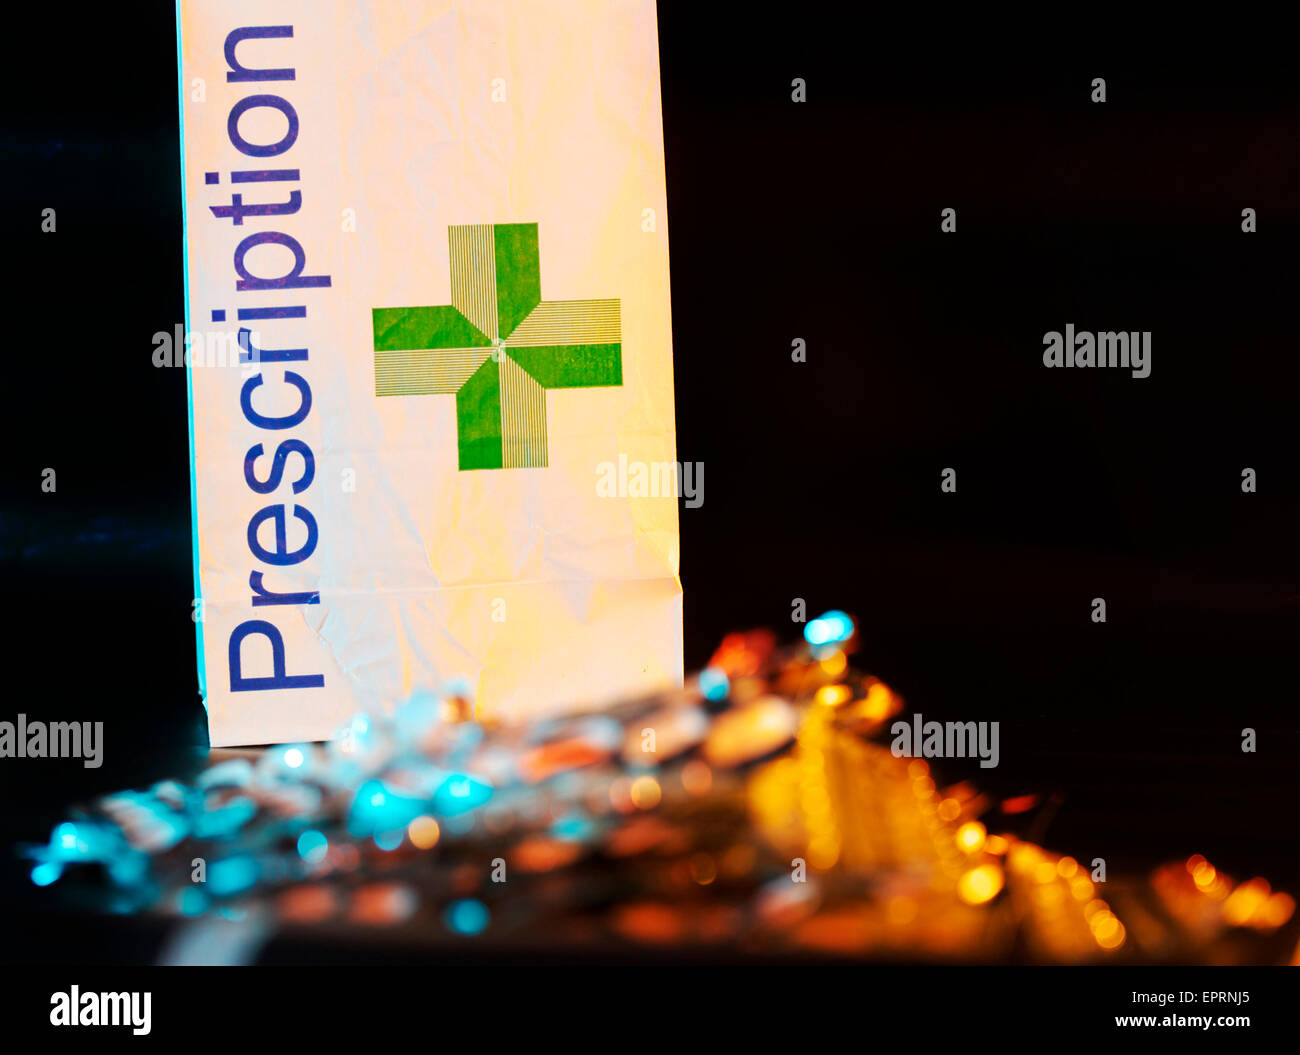 NHS pharmacy prescription paper bag with foil tablet packets/blister packs in the foreground - Stock Image